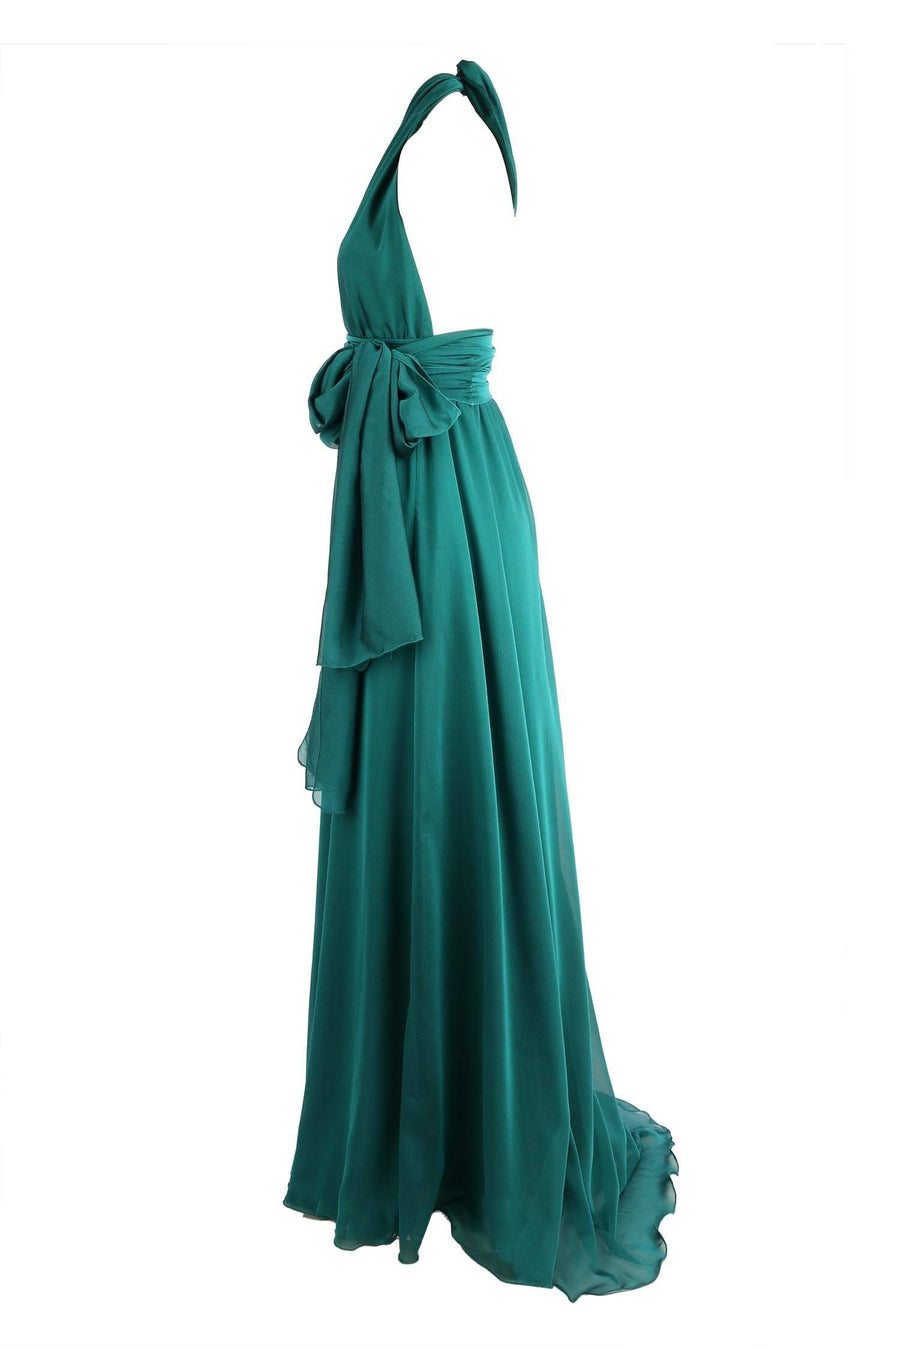 Shop Online Alida Gown in Emerald | Chiffon by Lucy Laurita - Leiela  Frockaholics Dresses